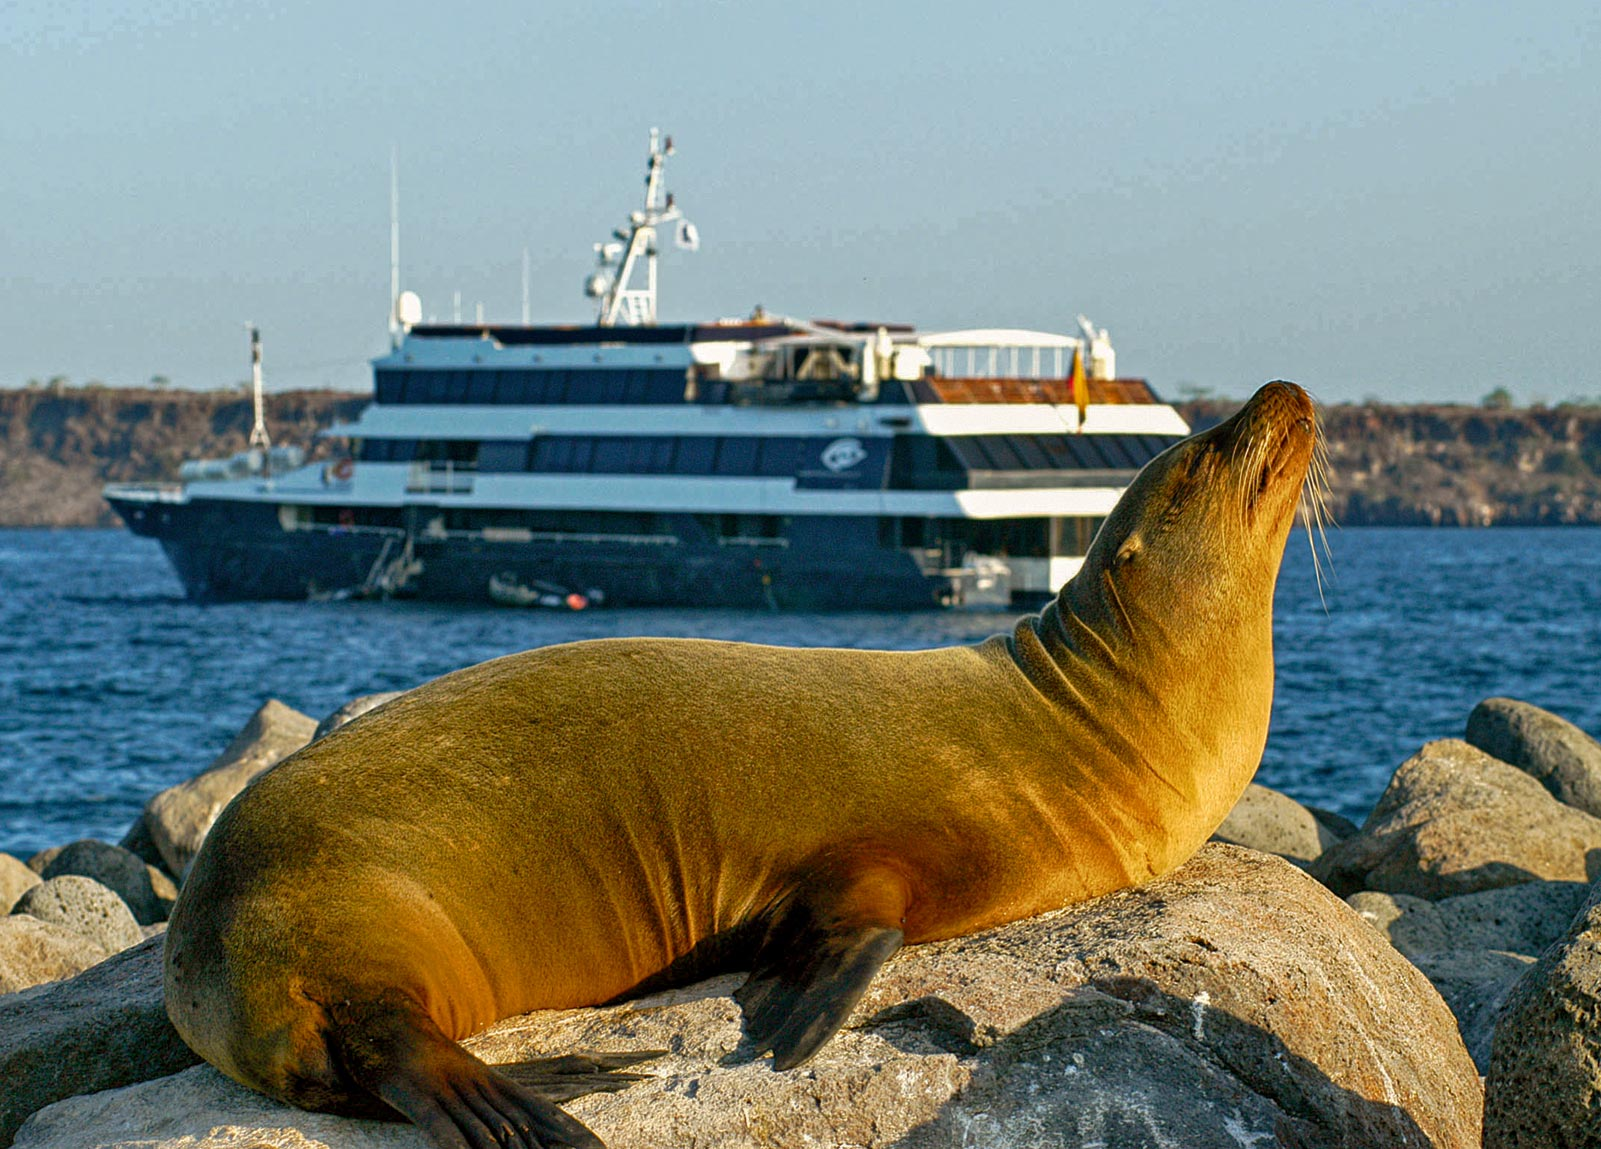 Book A 7 Night Galapagos Cruise And Get A 99 Week In